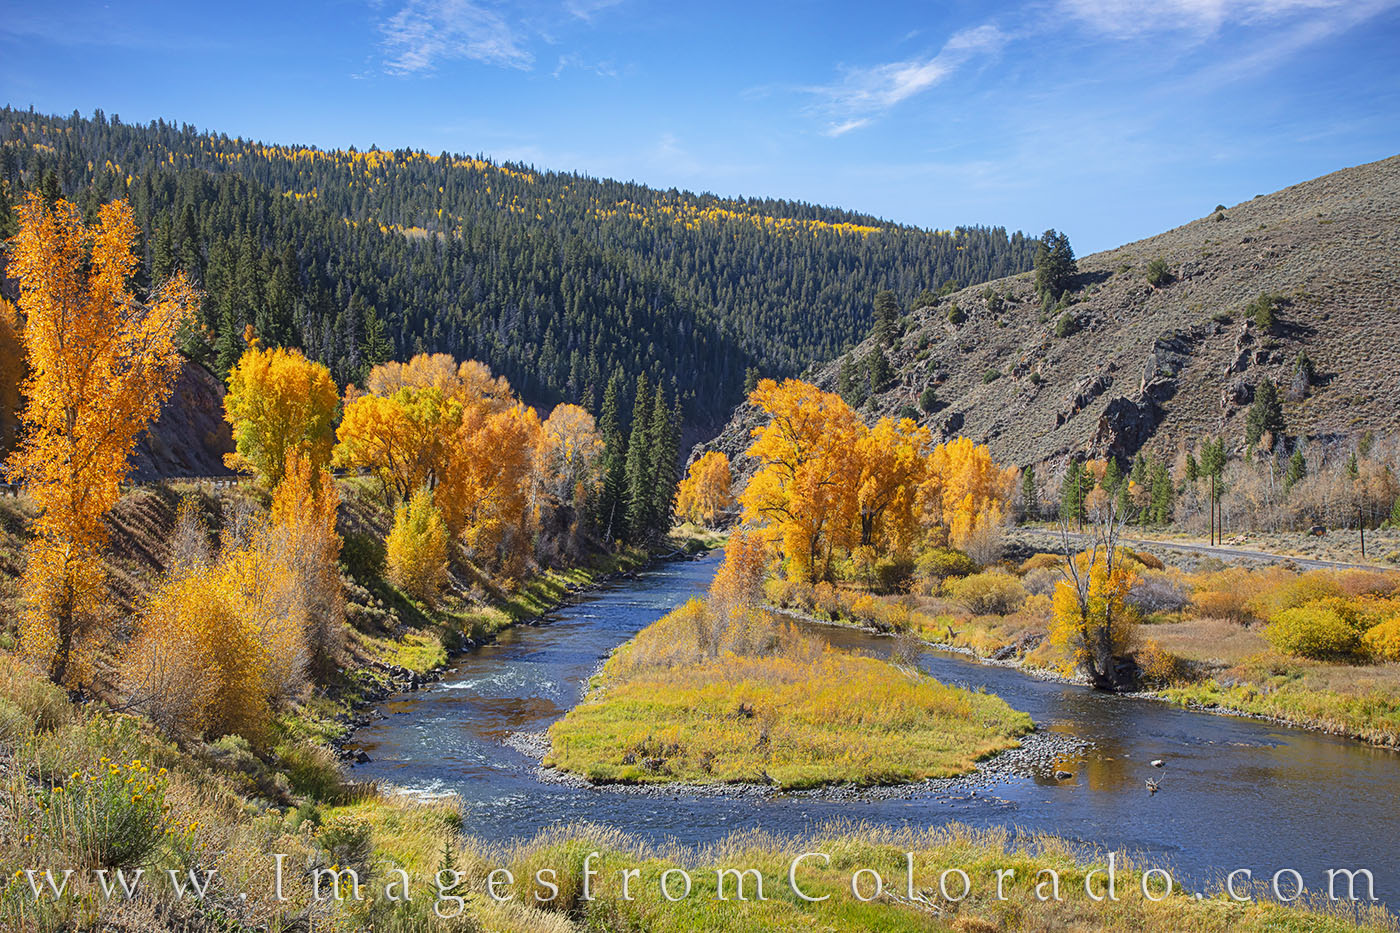 On a cool October afternoon, Byers Canyon seems to glow in orange and gold fall colors.